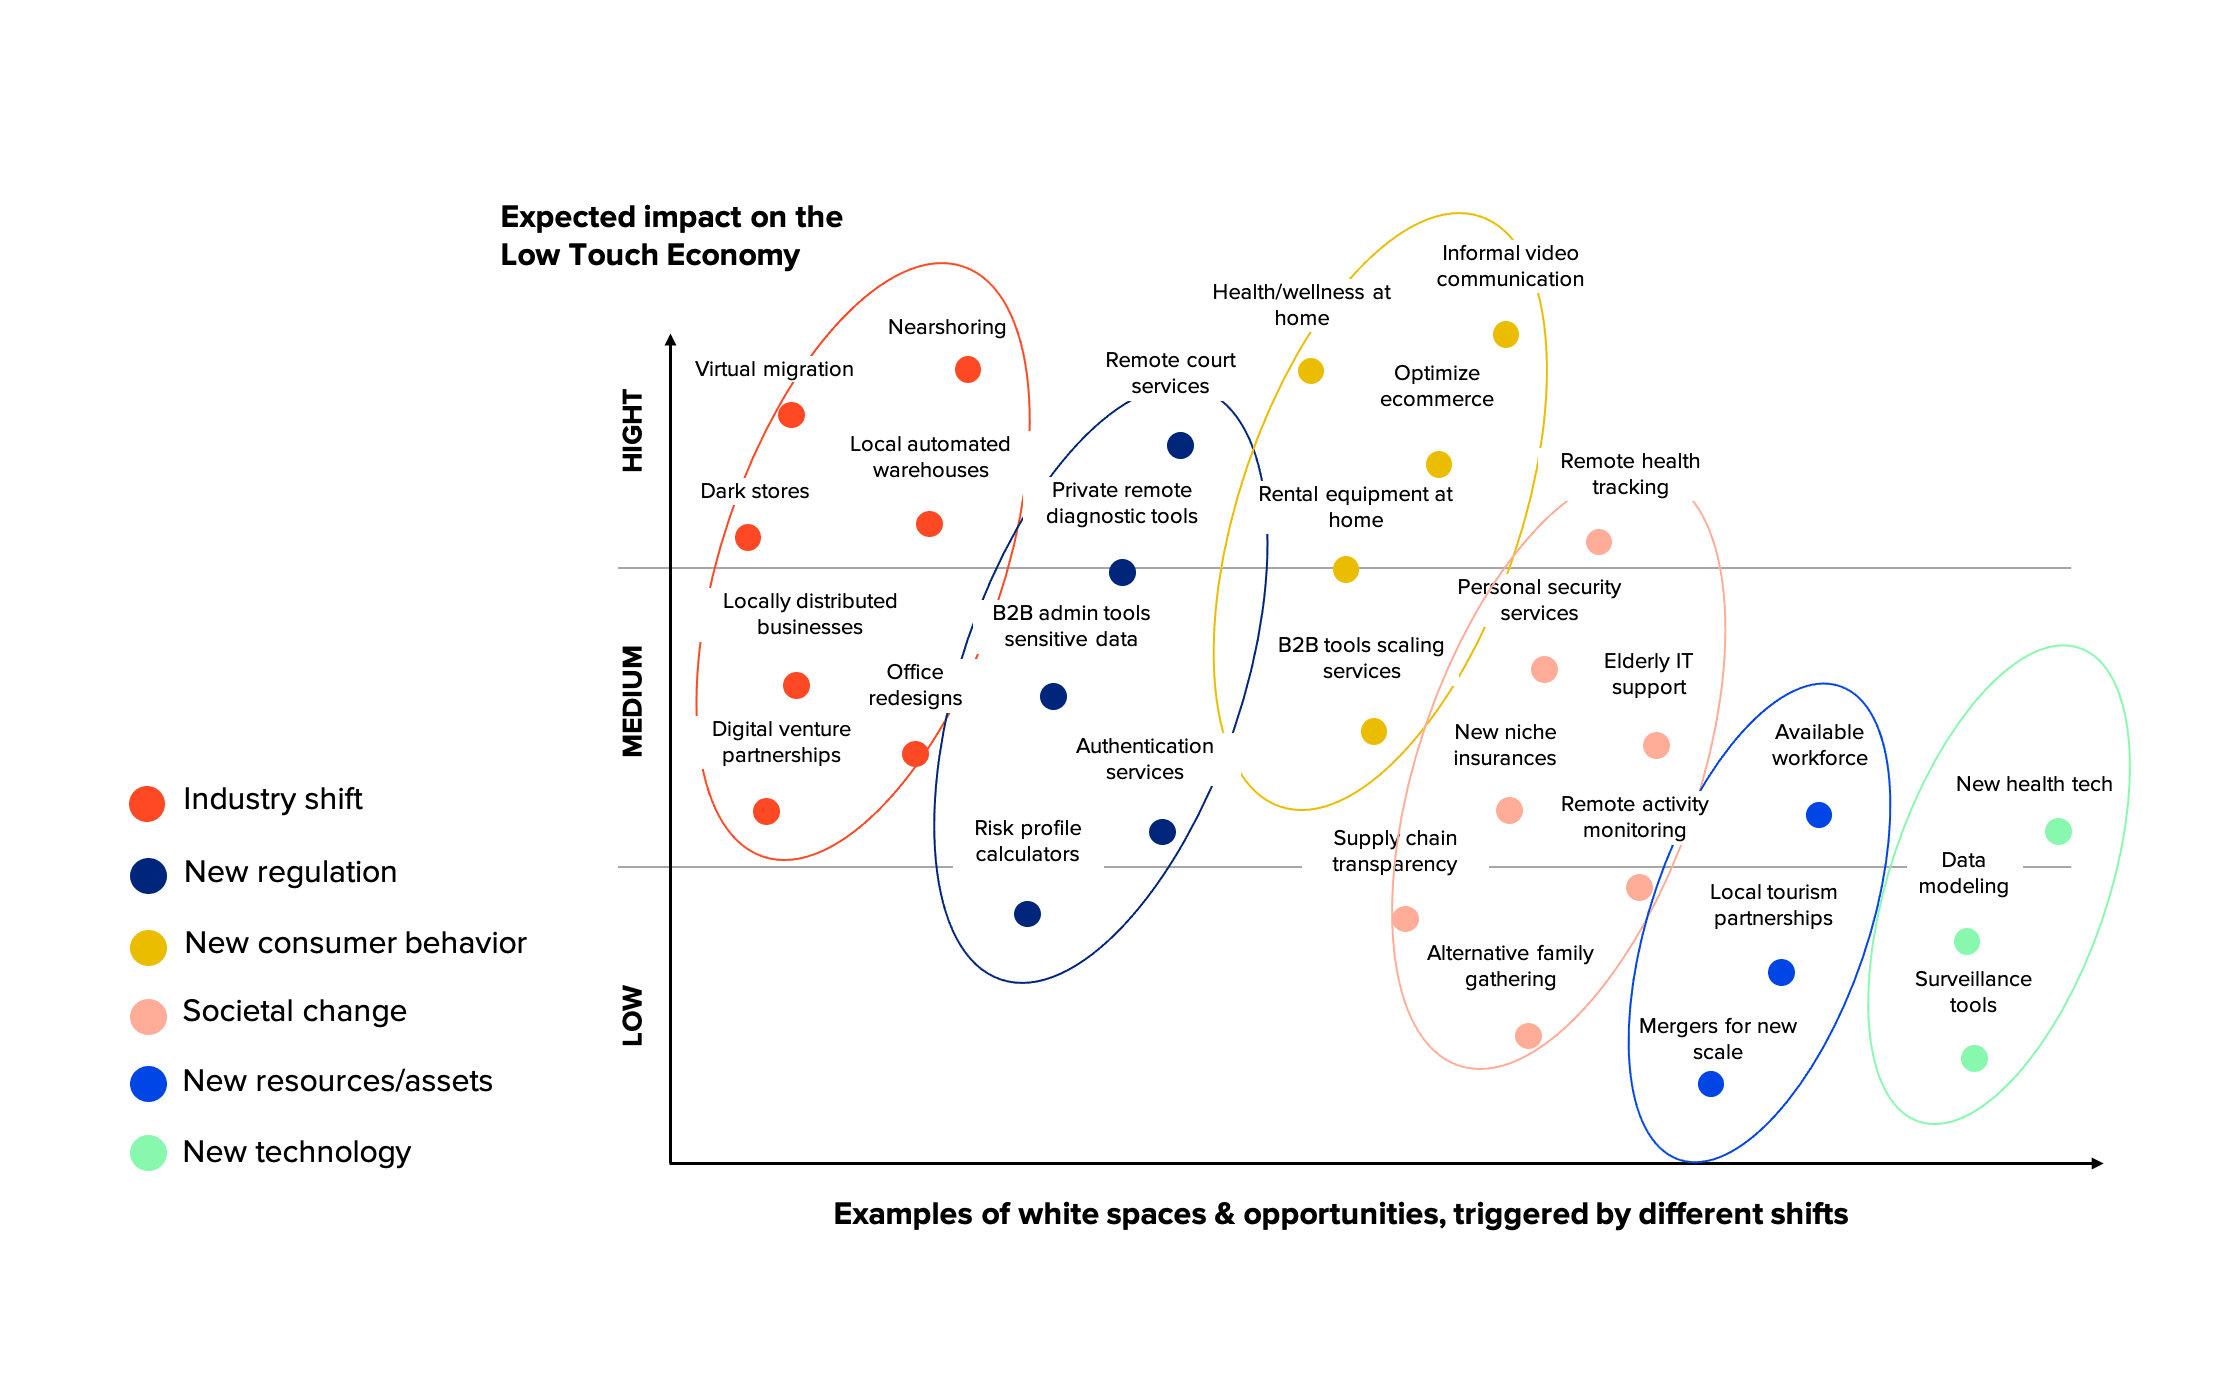 Opportunities within the low-touch economy